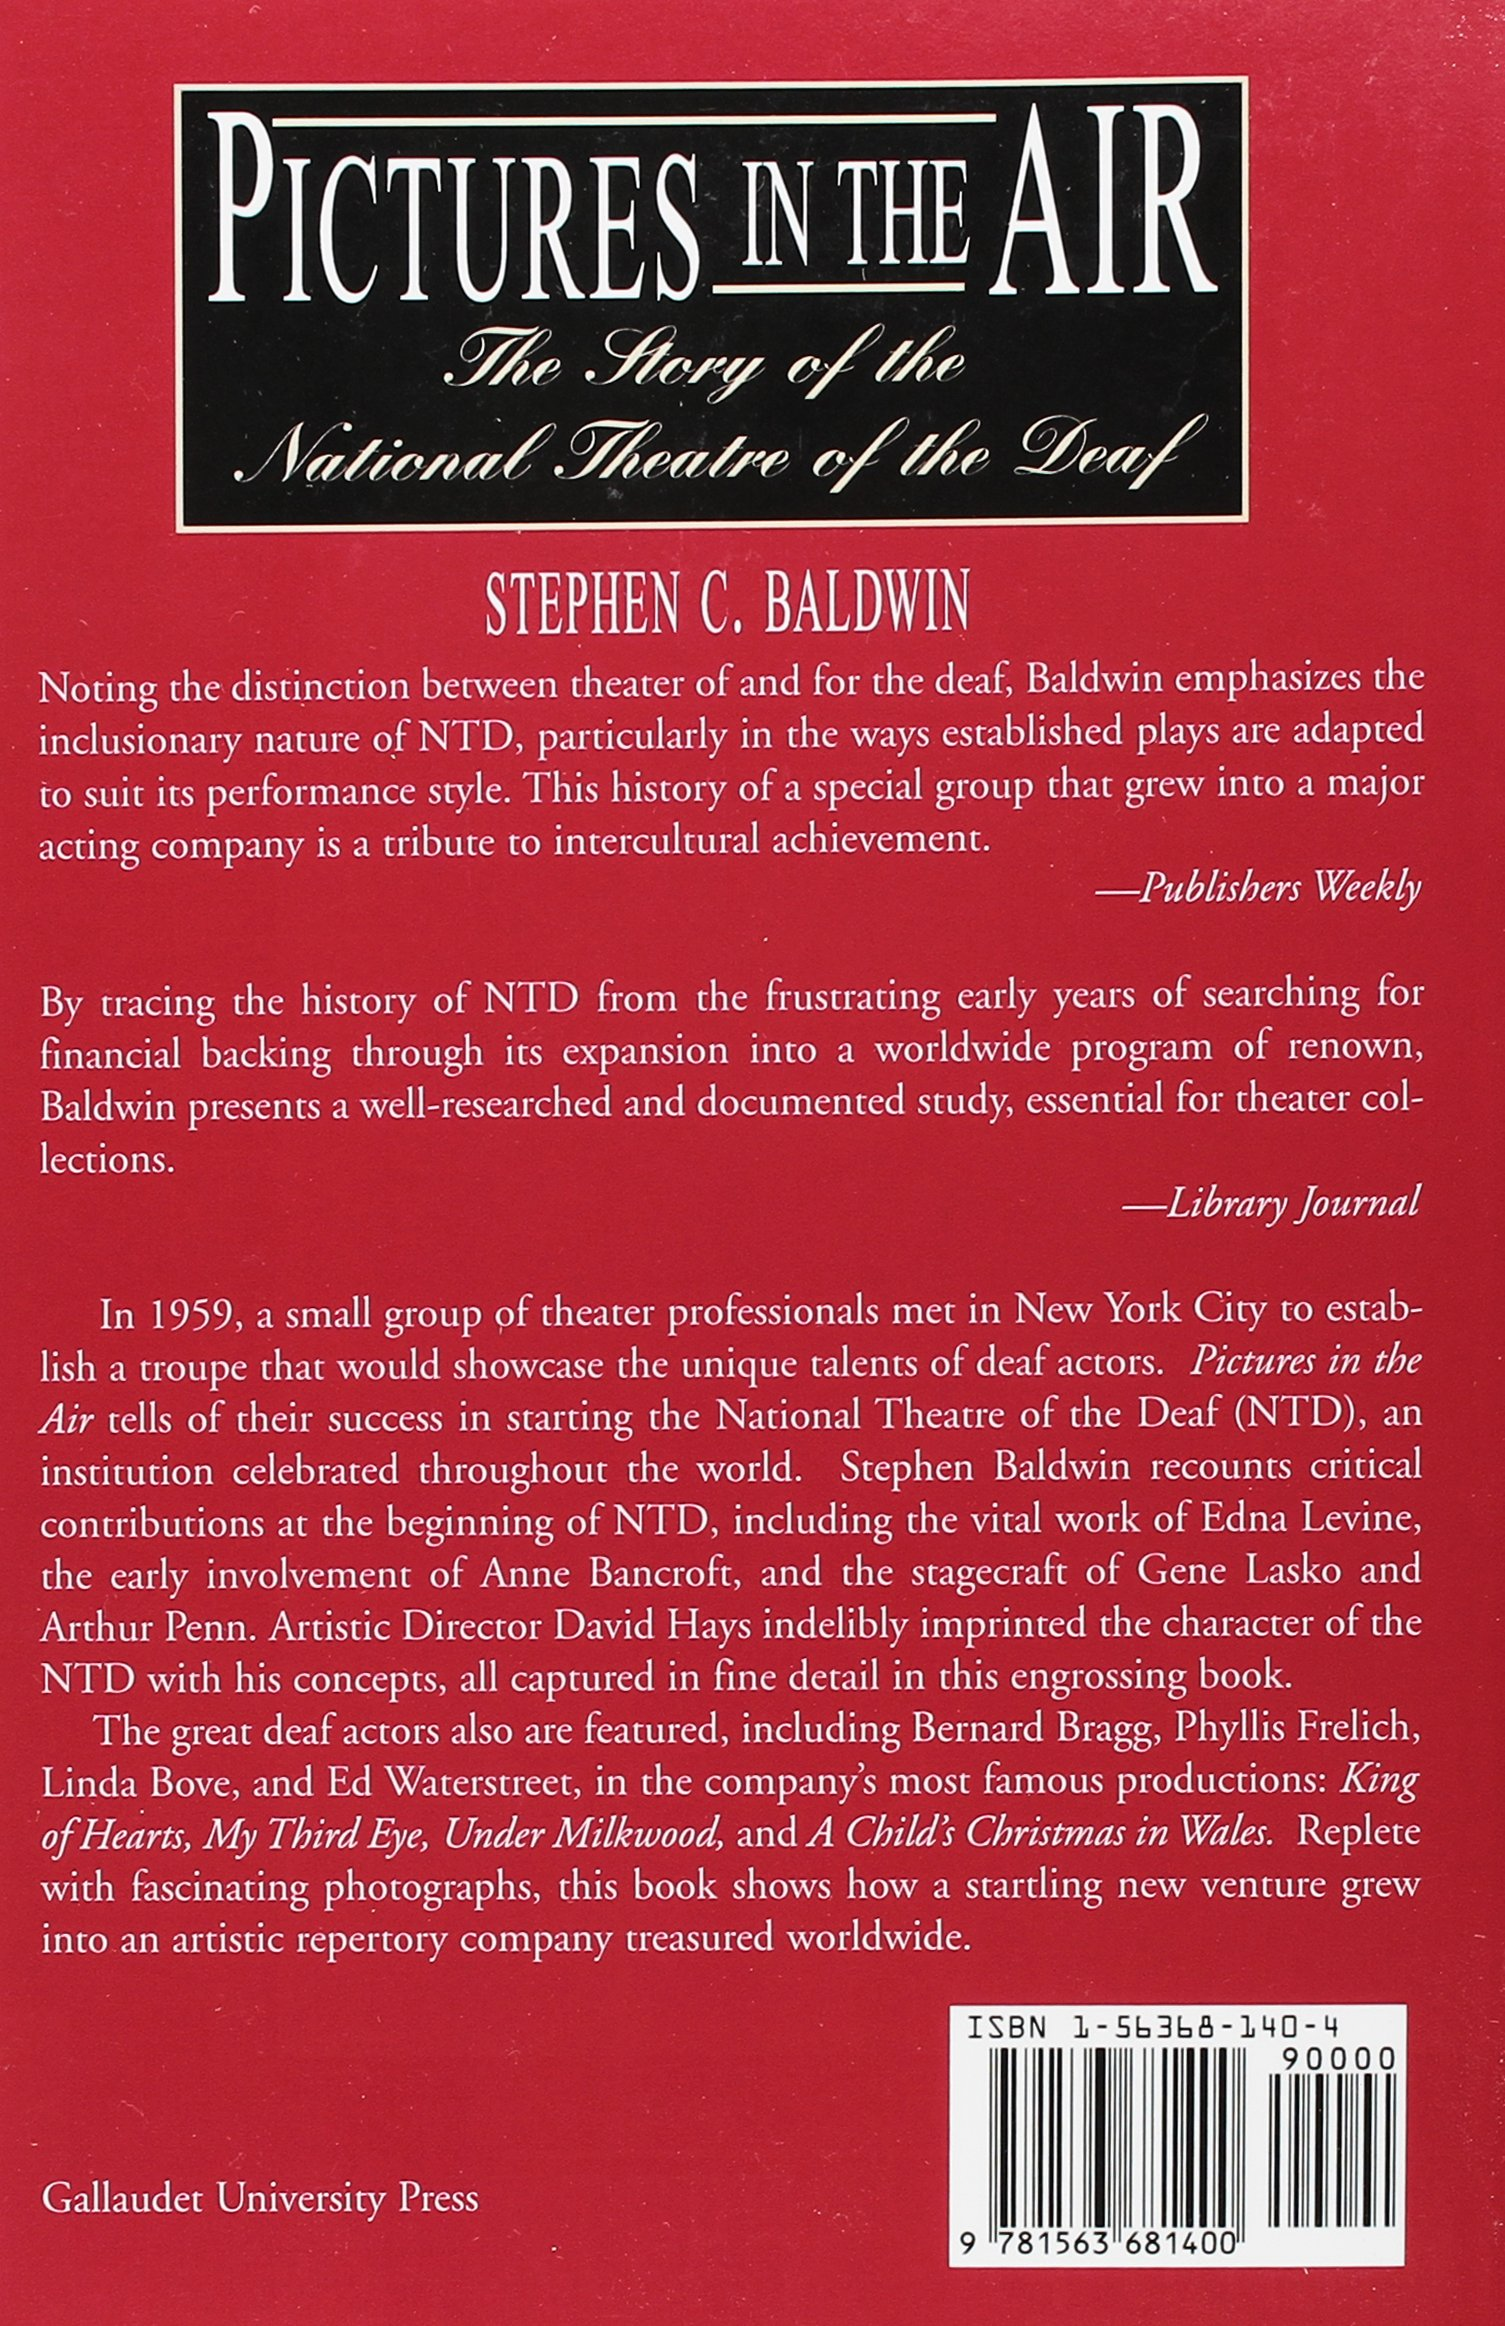 Amazon.com: Pictures in the Air: The Story of the National Theatre of the  Deaf (9781563681400): Stephen C. Baldwin: Books